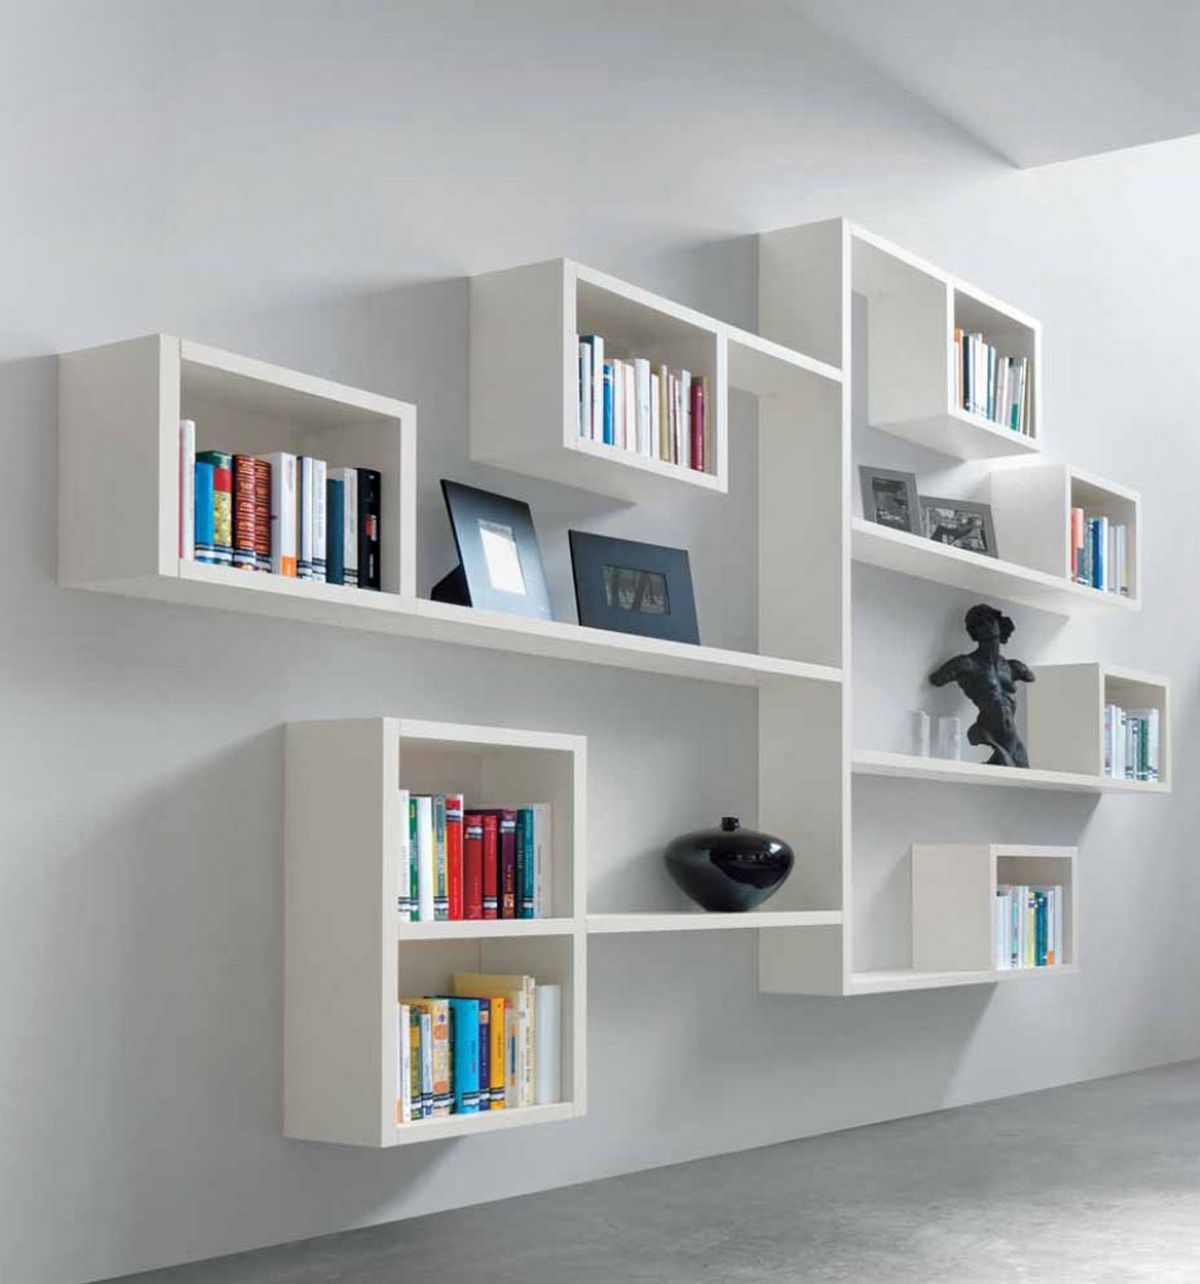 wall bookshelf art display 1st floor: creative alternative, combination shelving, and  shadow OXUJNOD